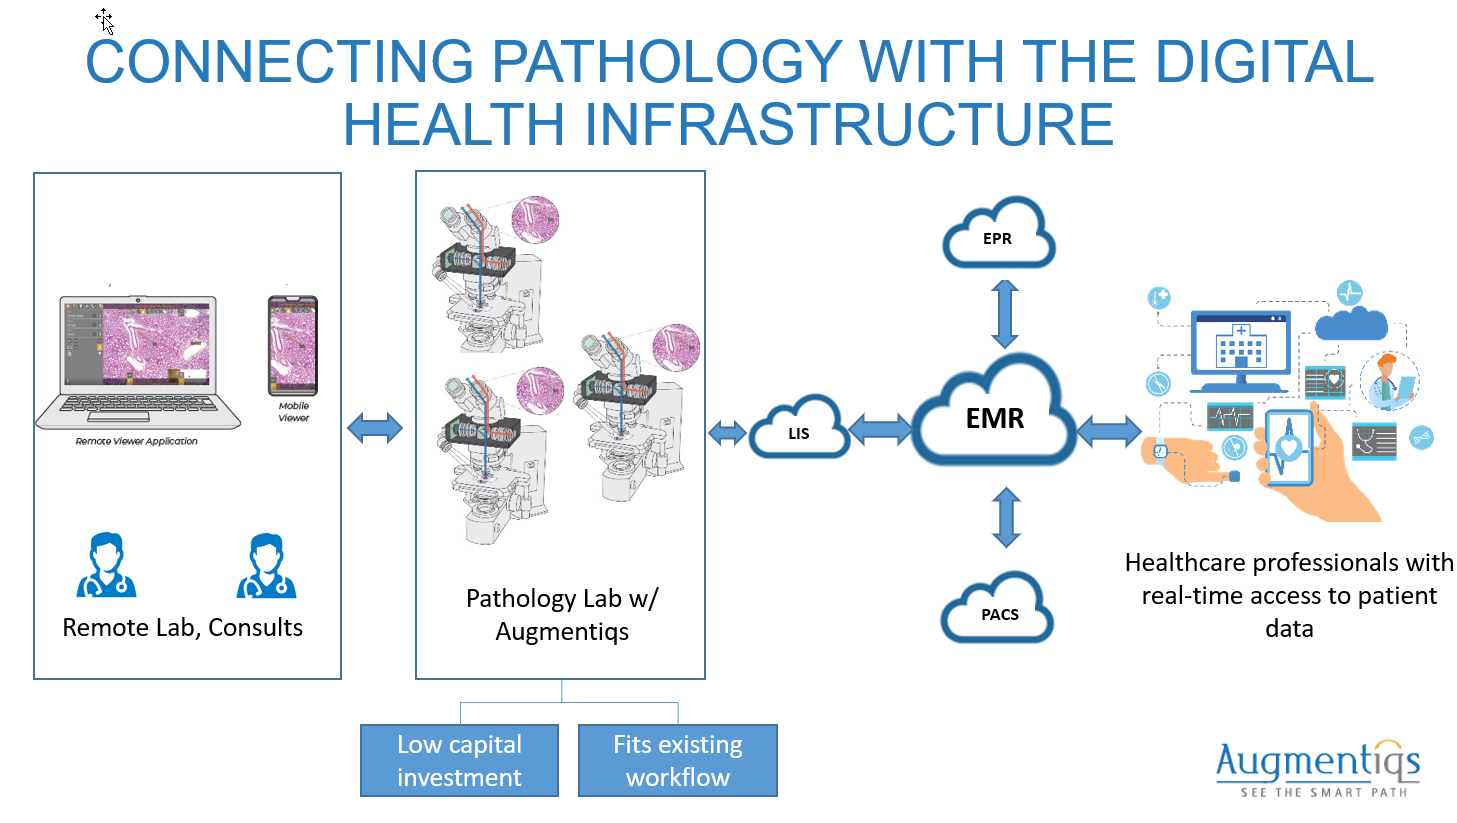 telepathology-connected-to-lis